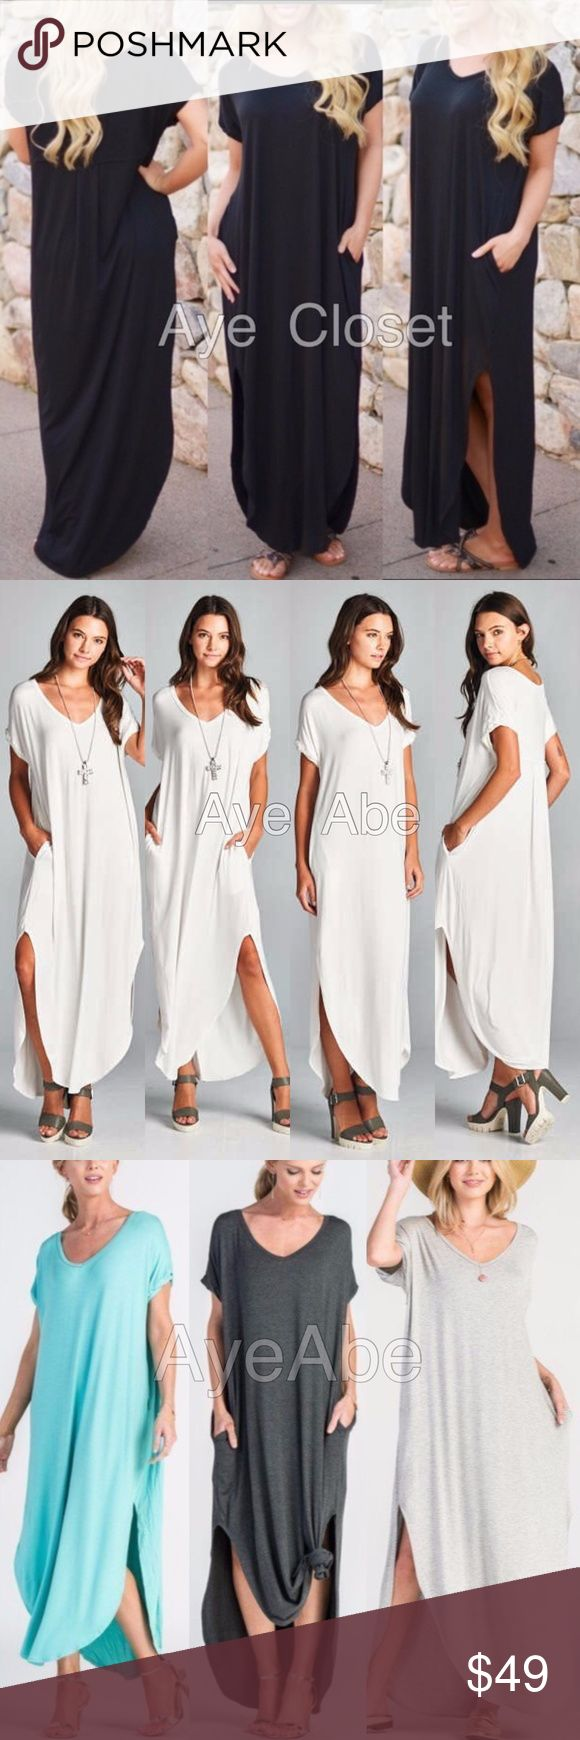 """Oversized loose fit slit long maxi dress pockets New boho chic maxi dress.Super comfy. Oversized, loose fit v-neck long maxi dress featuring side slits and side pockets. high quality and stretchy fabric. Runs big. And meant to be.  Measurements takes from size 1X Length: 58"""" Chest: 34""""  ❌price firm unless bundled⭕️ boutique Dresses Maxi"""